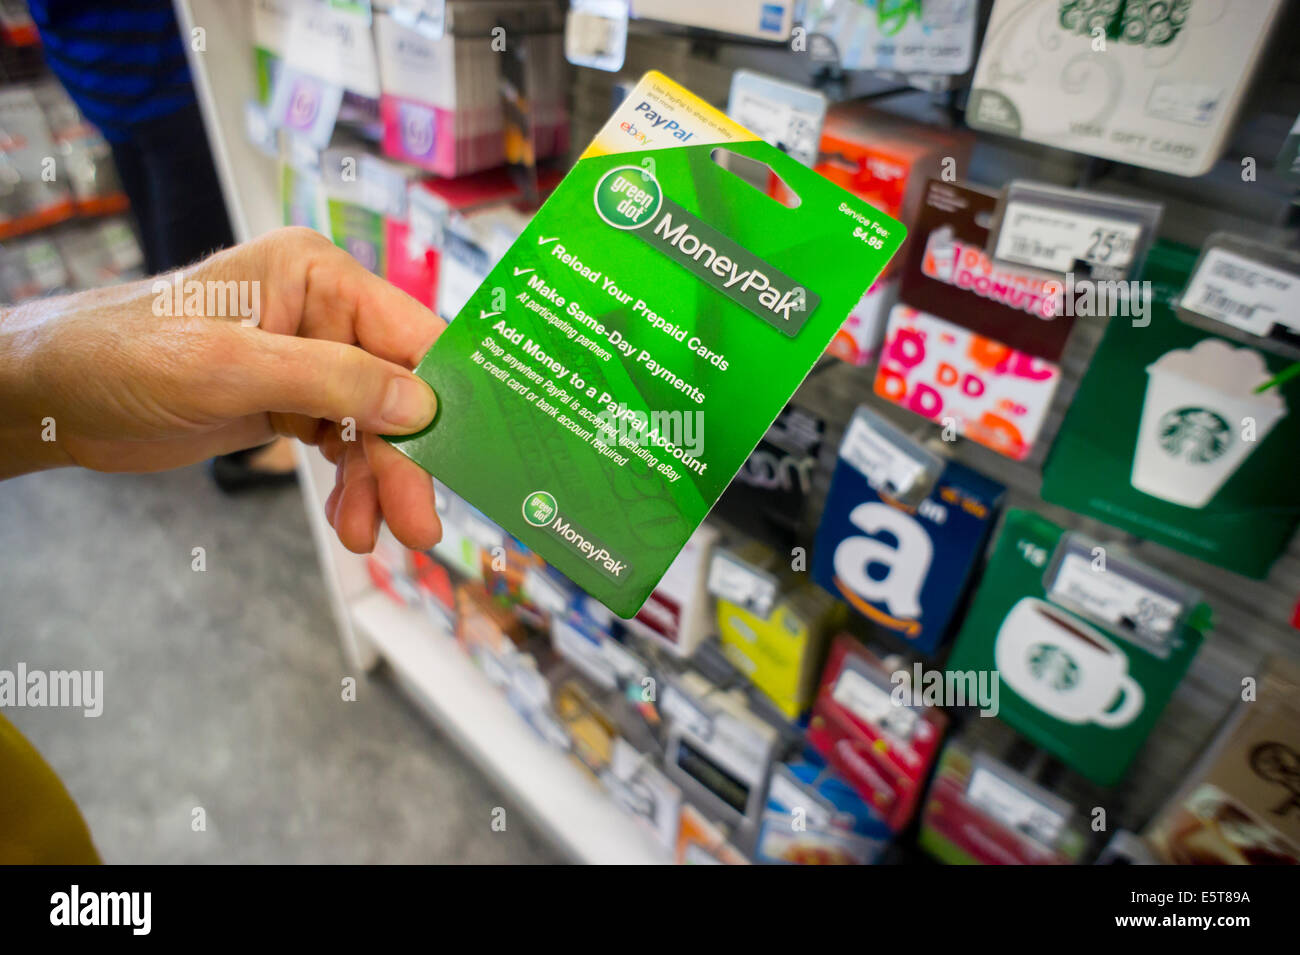 moneybak a shopper chooses a green dot brand moneypak prepaid card a shopper chooses a green dot brand moneypak prepaid card in a a shopper chooses a green